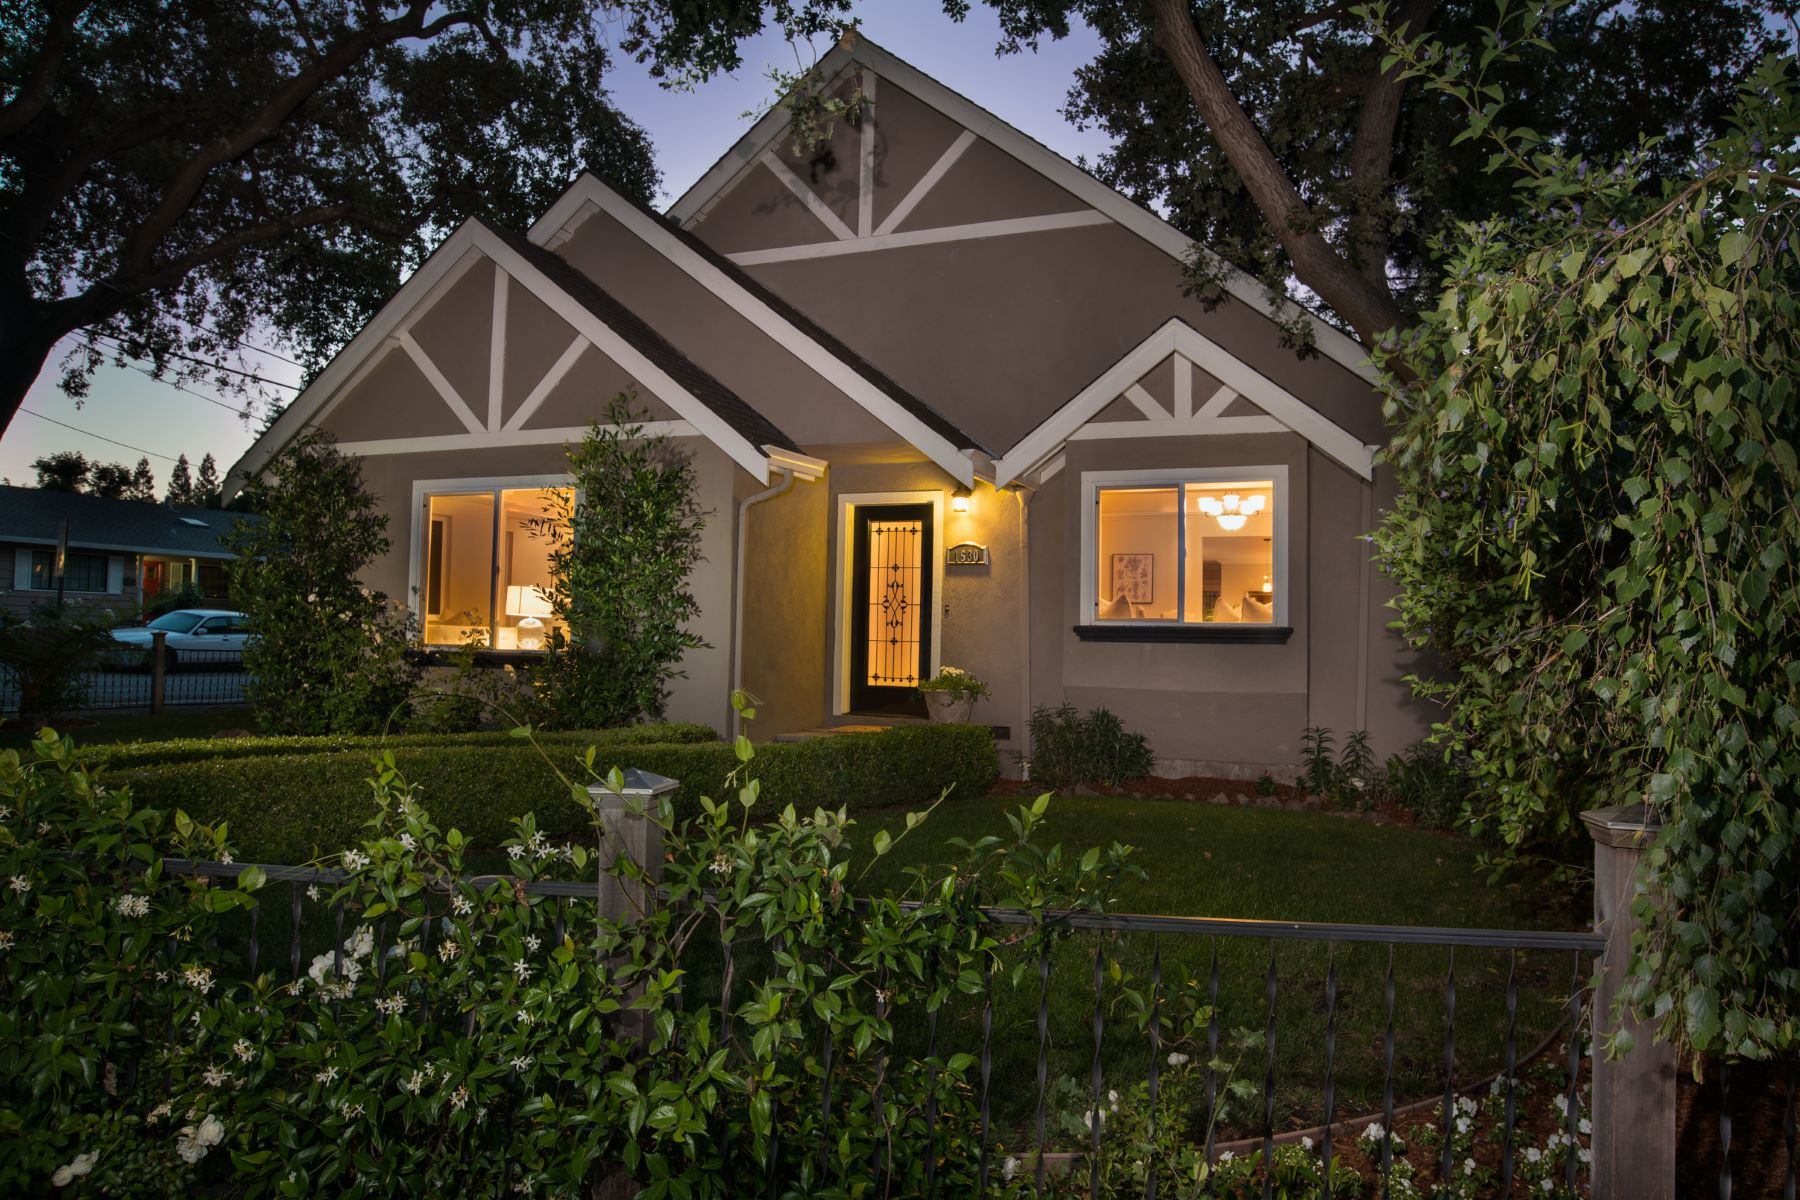 Single Family Home for Sale at 1530 W Selby 1530 W Selby Lane Redwood City, California 94062 United States